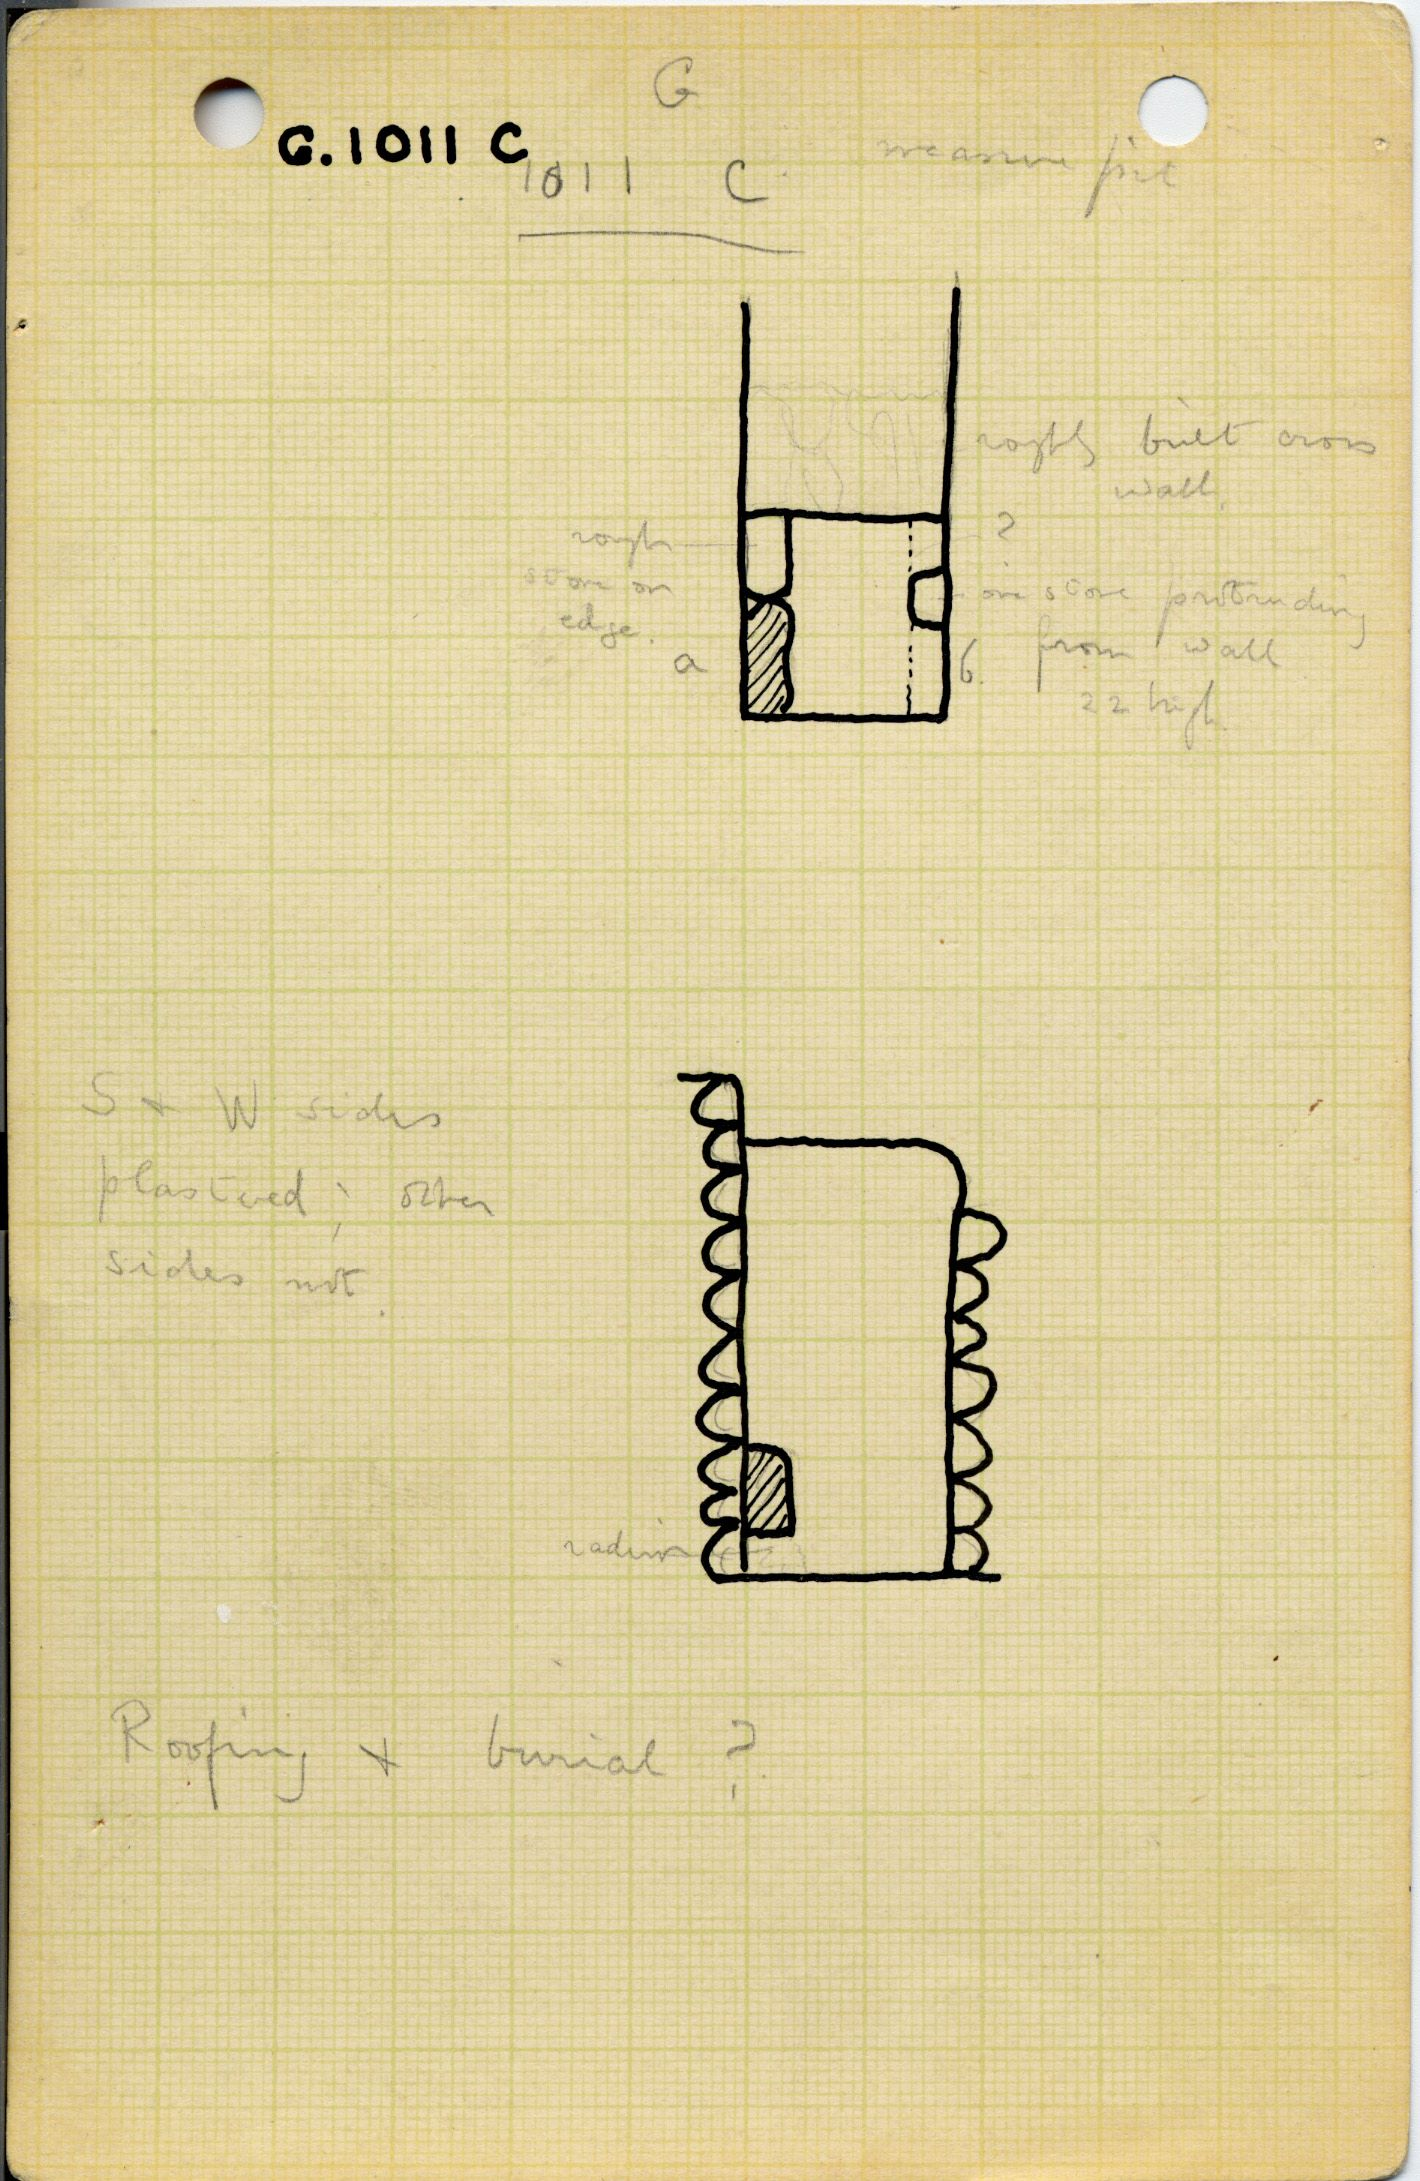 Maps and plans: G 1011, Shaft C